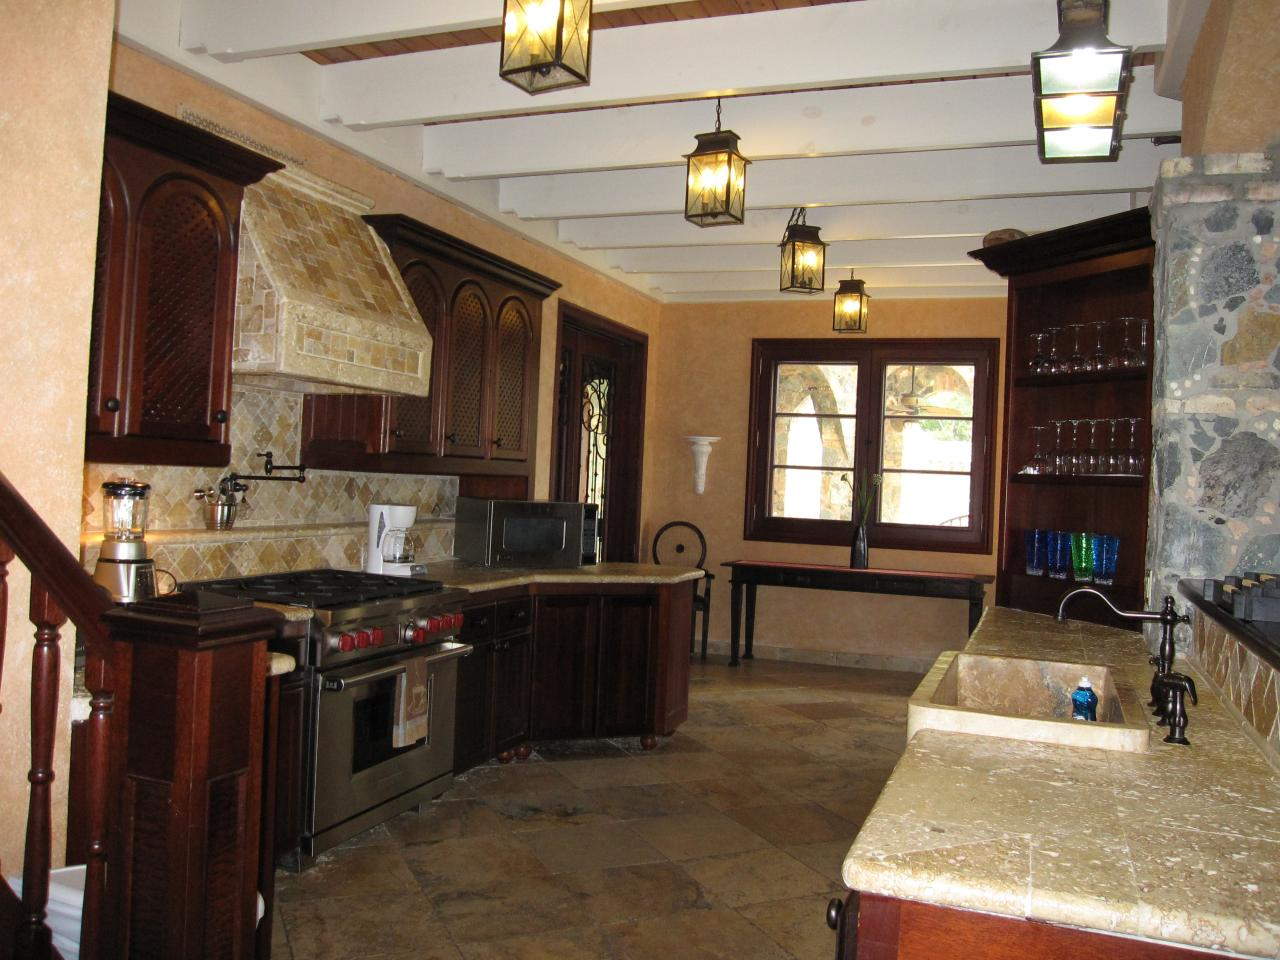 St John, Virgin Islands 00830, 4 Bedrooms Bedrooms, ,5 BathroomsBathrooms,Residential,For Sale,18-331